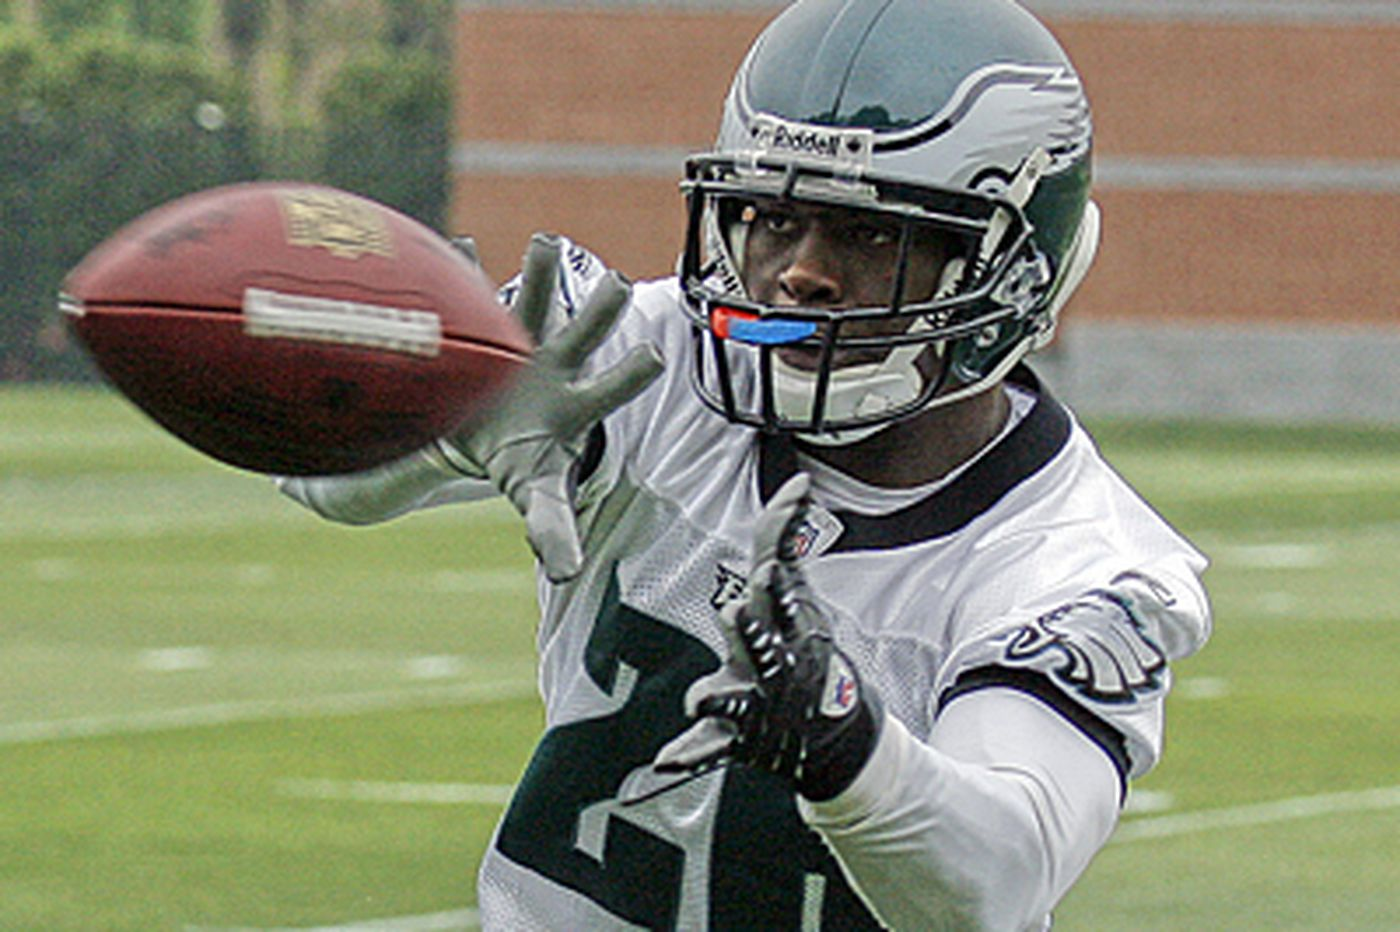 Bob Ford: Fun and head games with the Eagles